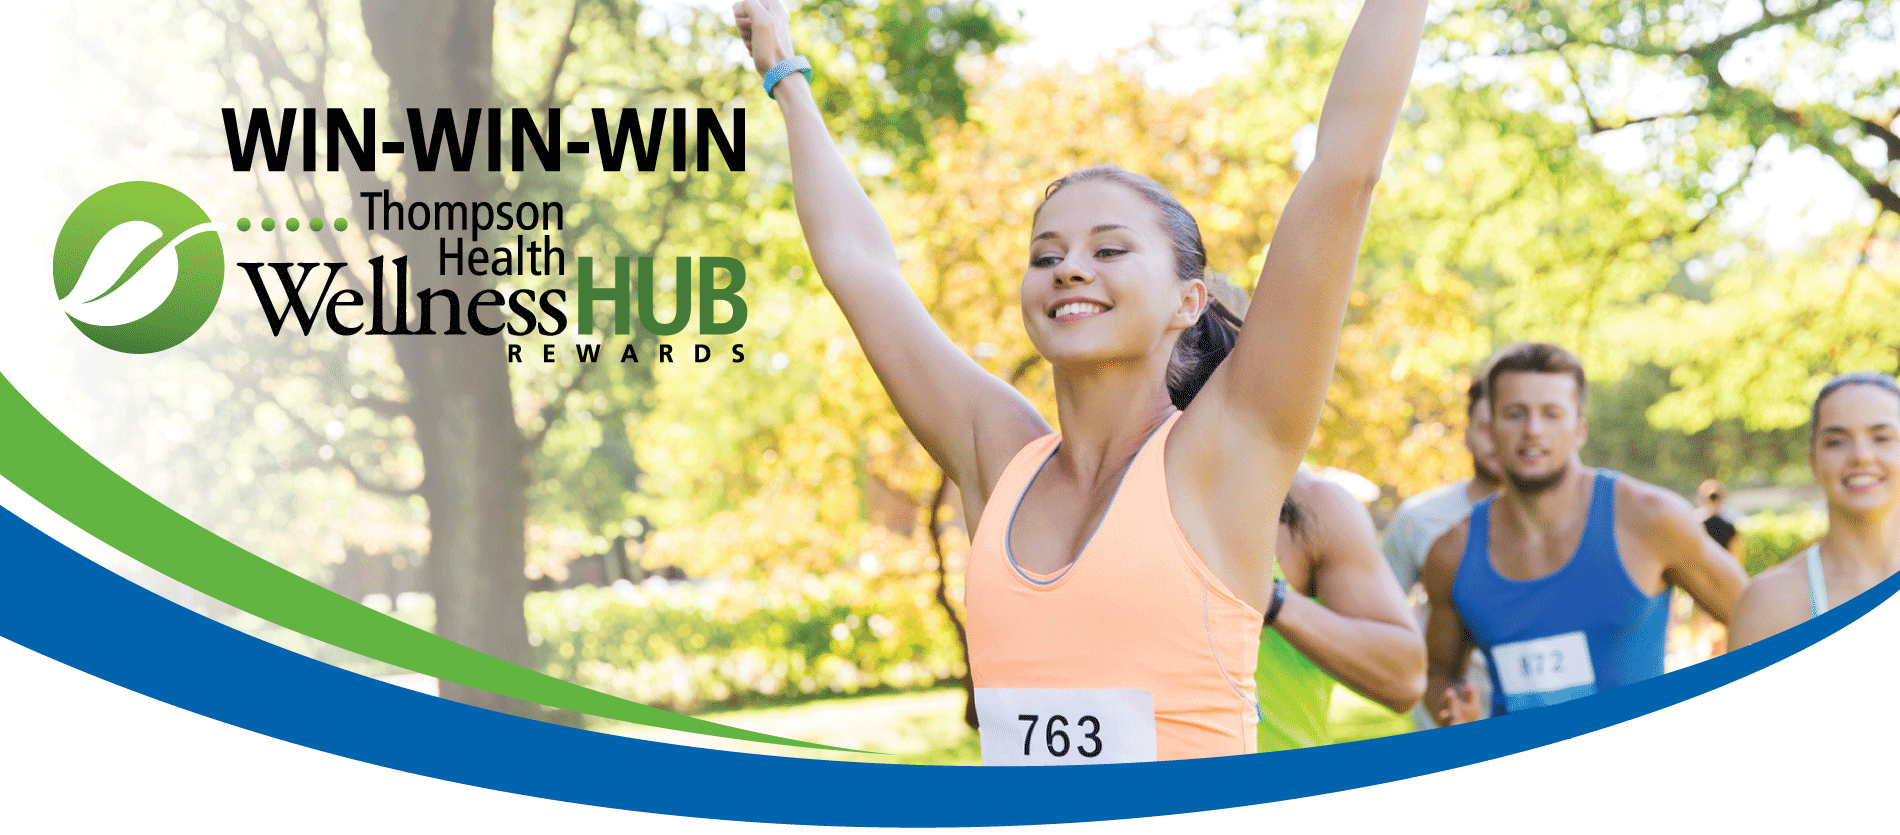 ThompsonHealth Wellness hub Merchants Rewards program